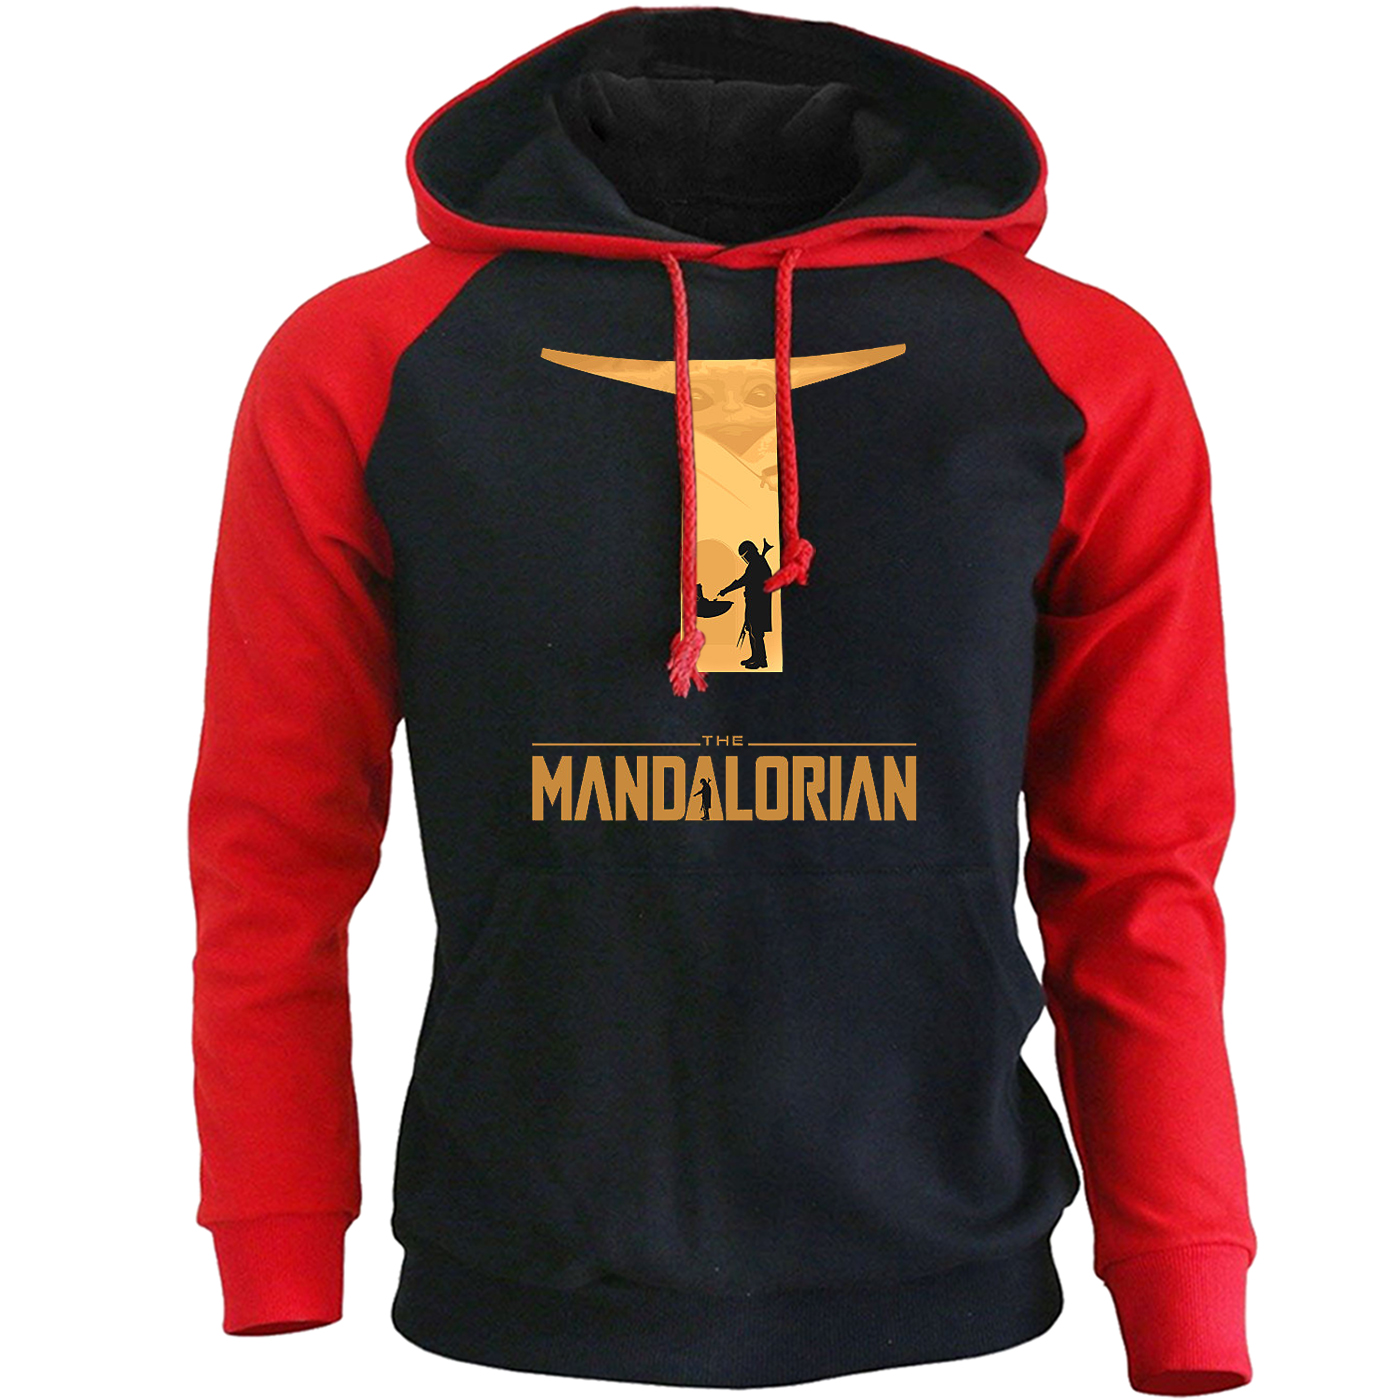 Star Wars The Mandalorian Hoodies Men Baby Yoda Sweatshirts Spring Autumn Casual Hooded Pullovers Streetwear Mens Sportswear